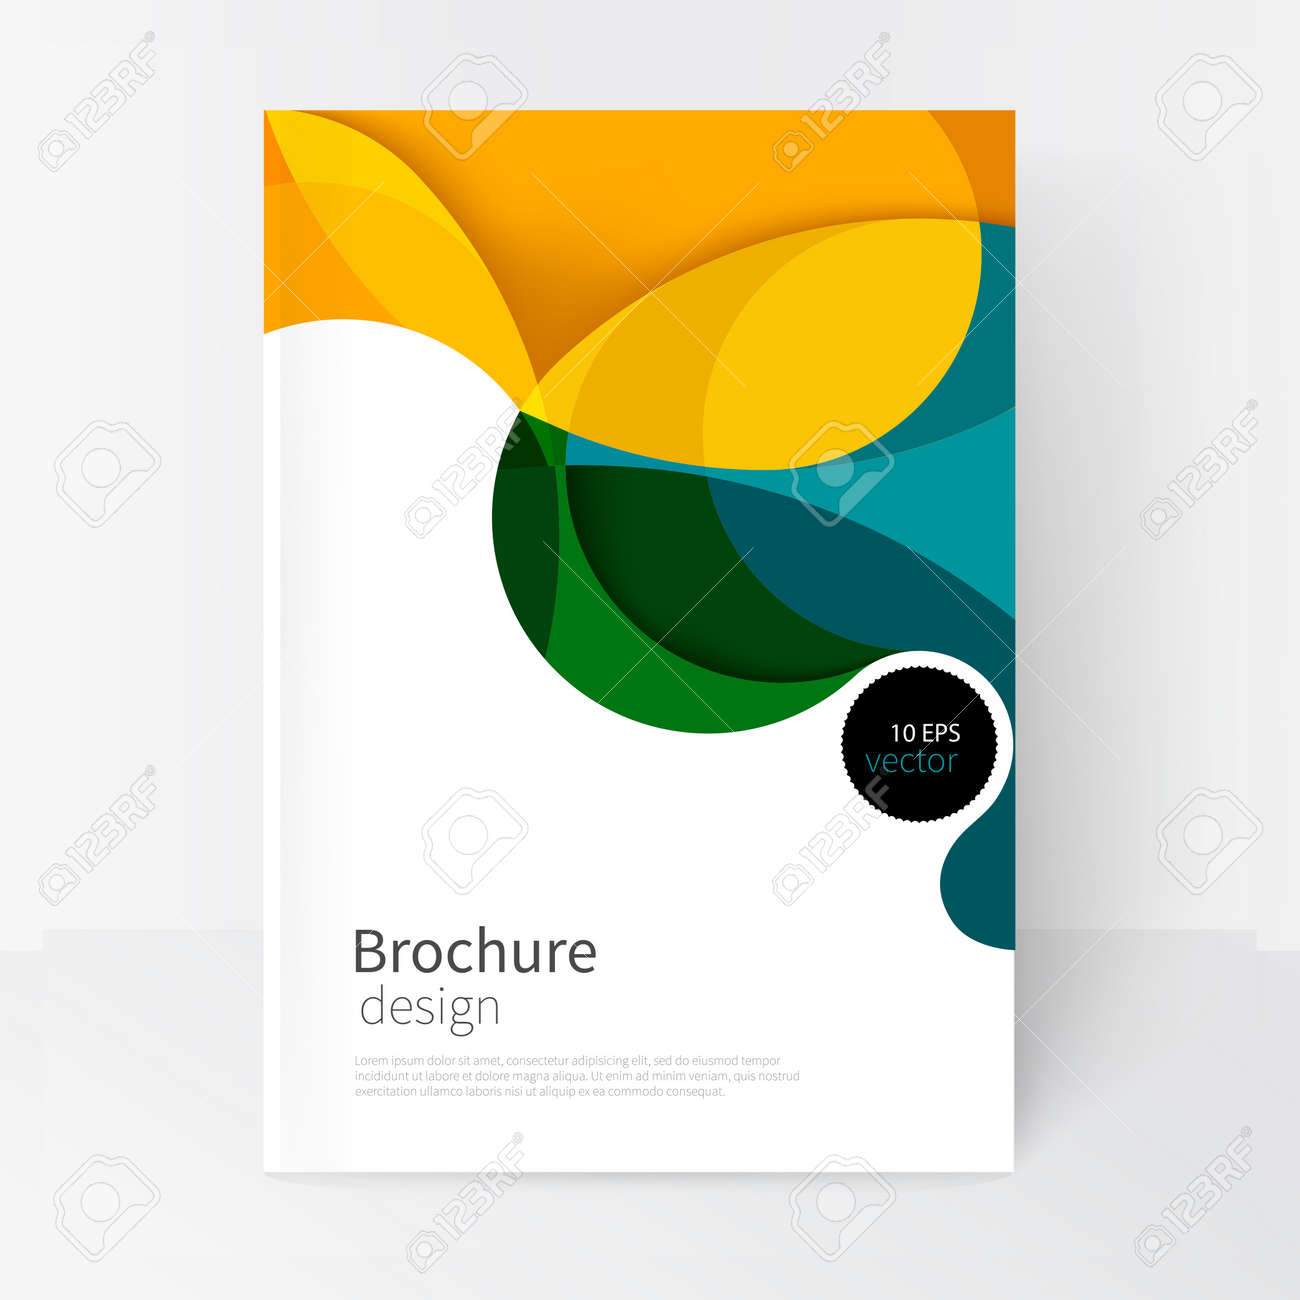 vector white business brochure cover template.modern abstract background green, yellow and blue waves - 65425780